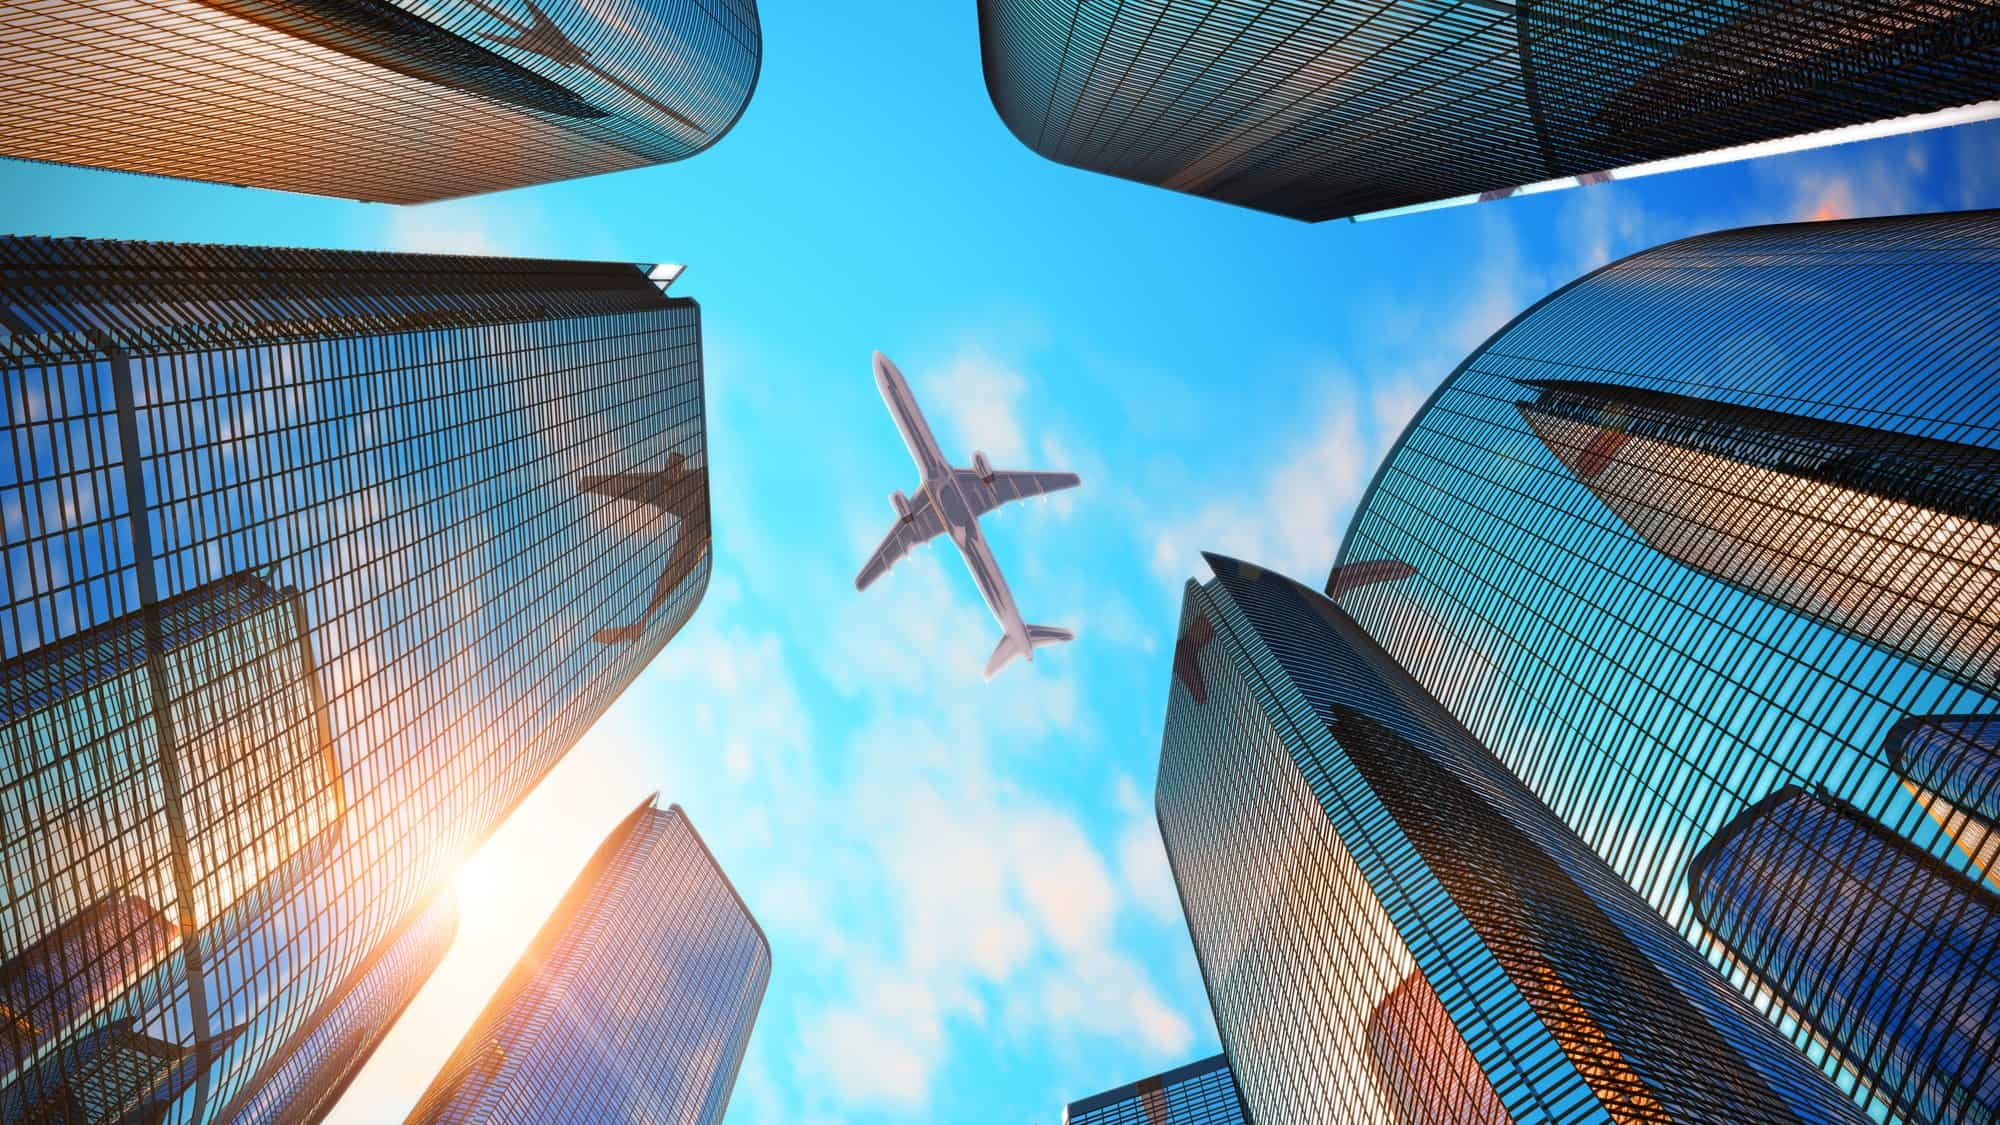 view from below of jet plane flying above city buildings representing corporate travel share price